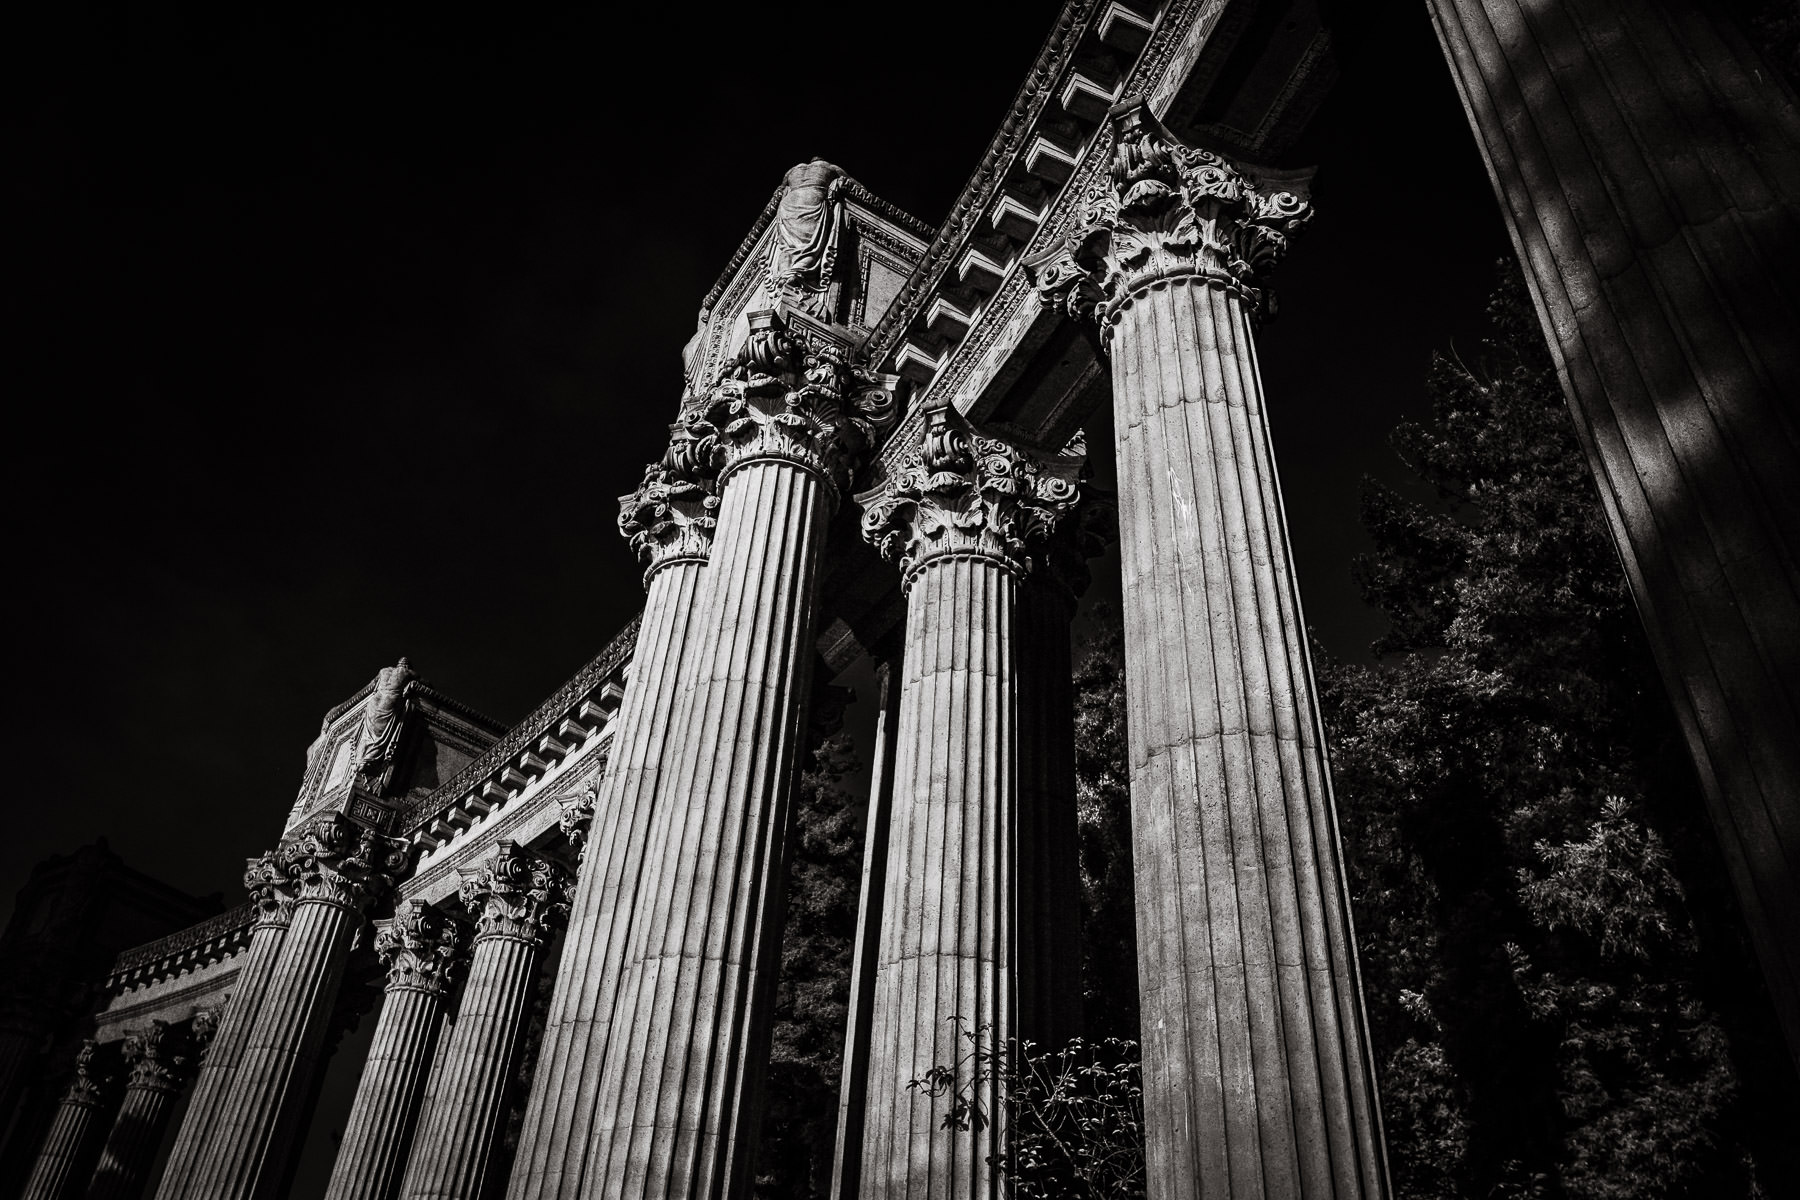 Architectural detail of columns at San Francisco's Palace of Fine Arts.